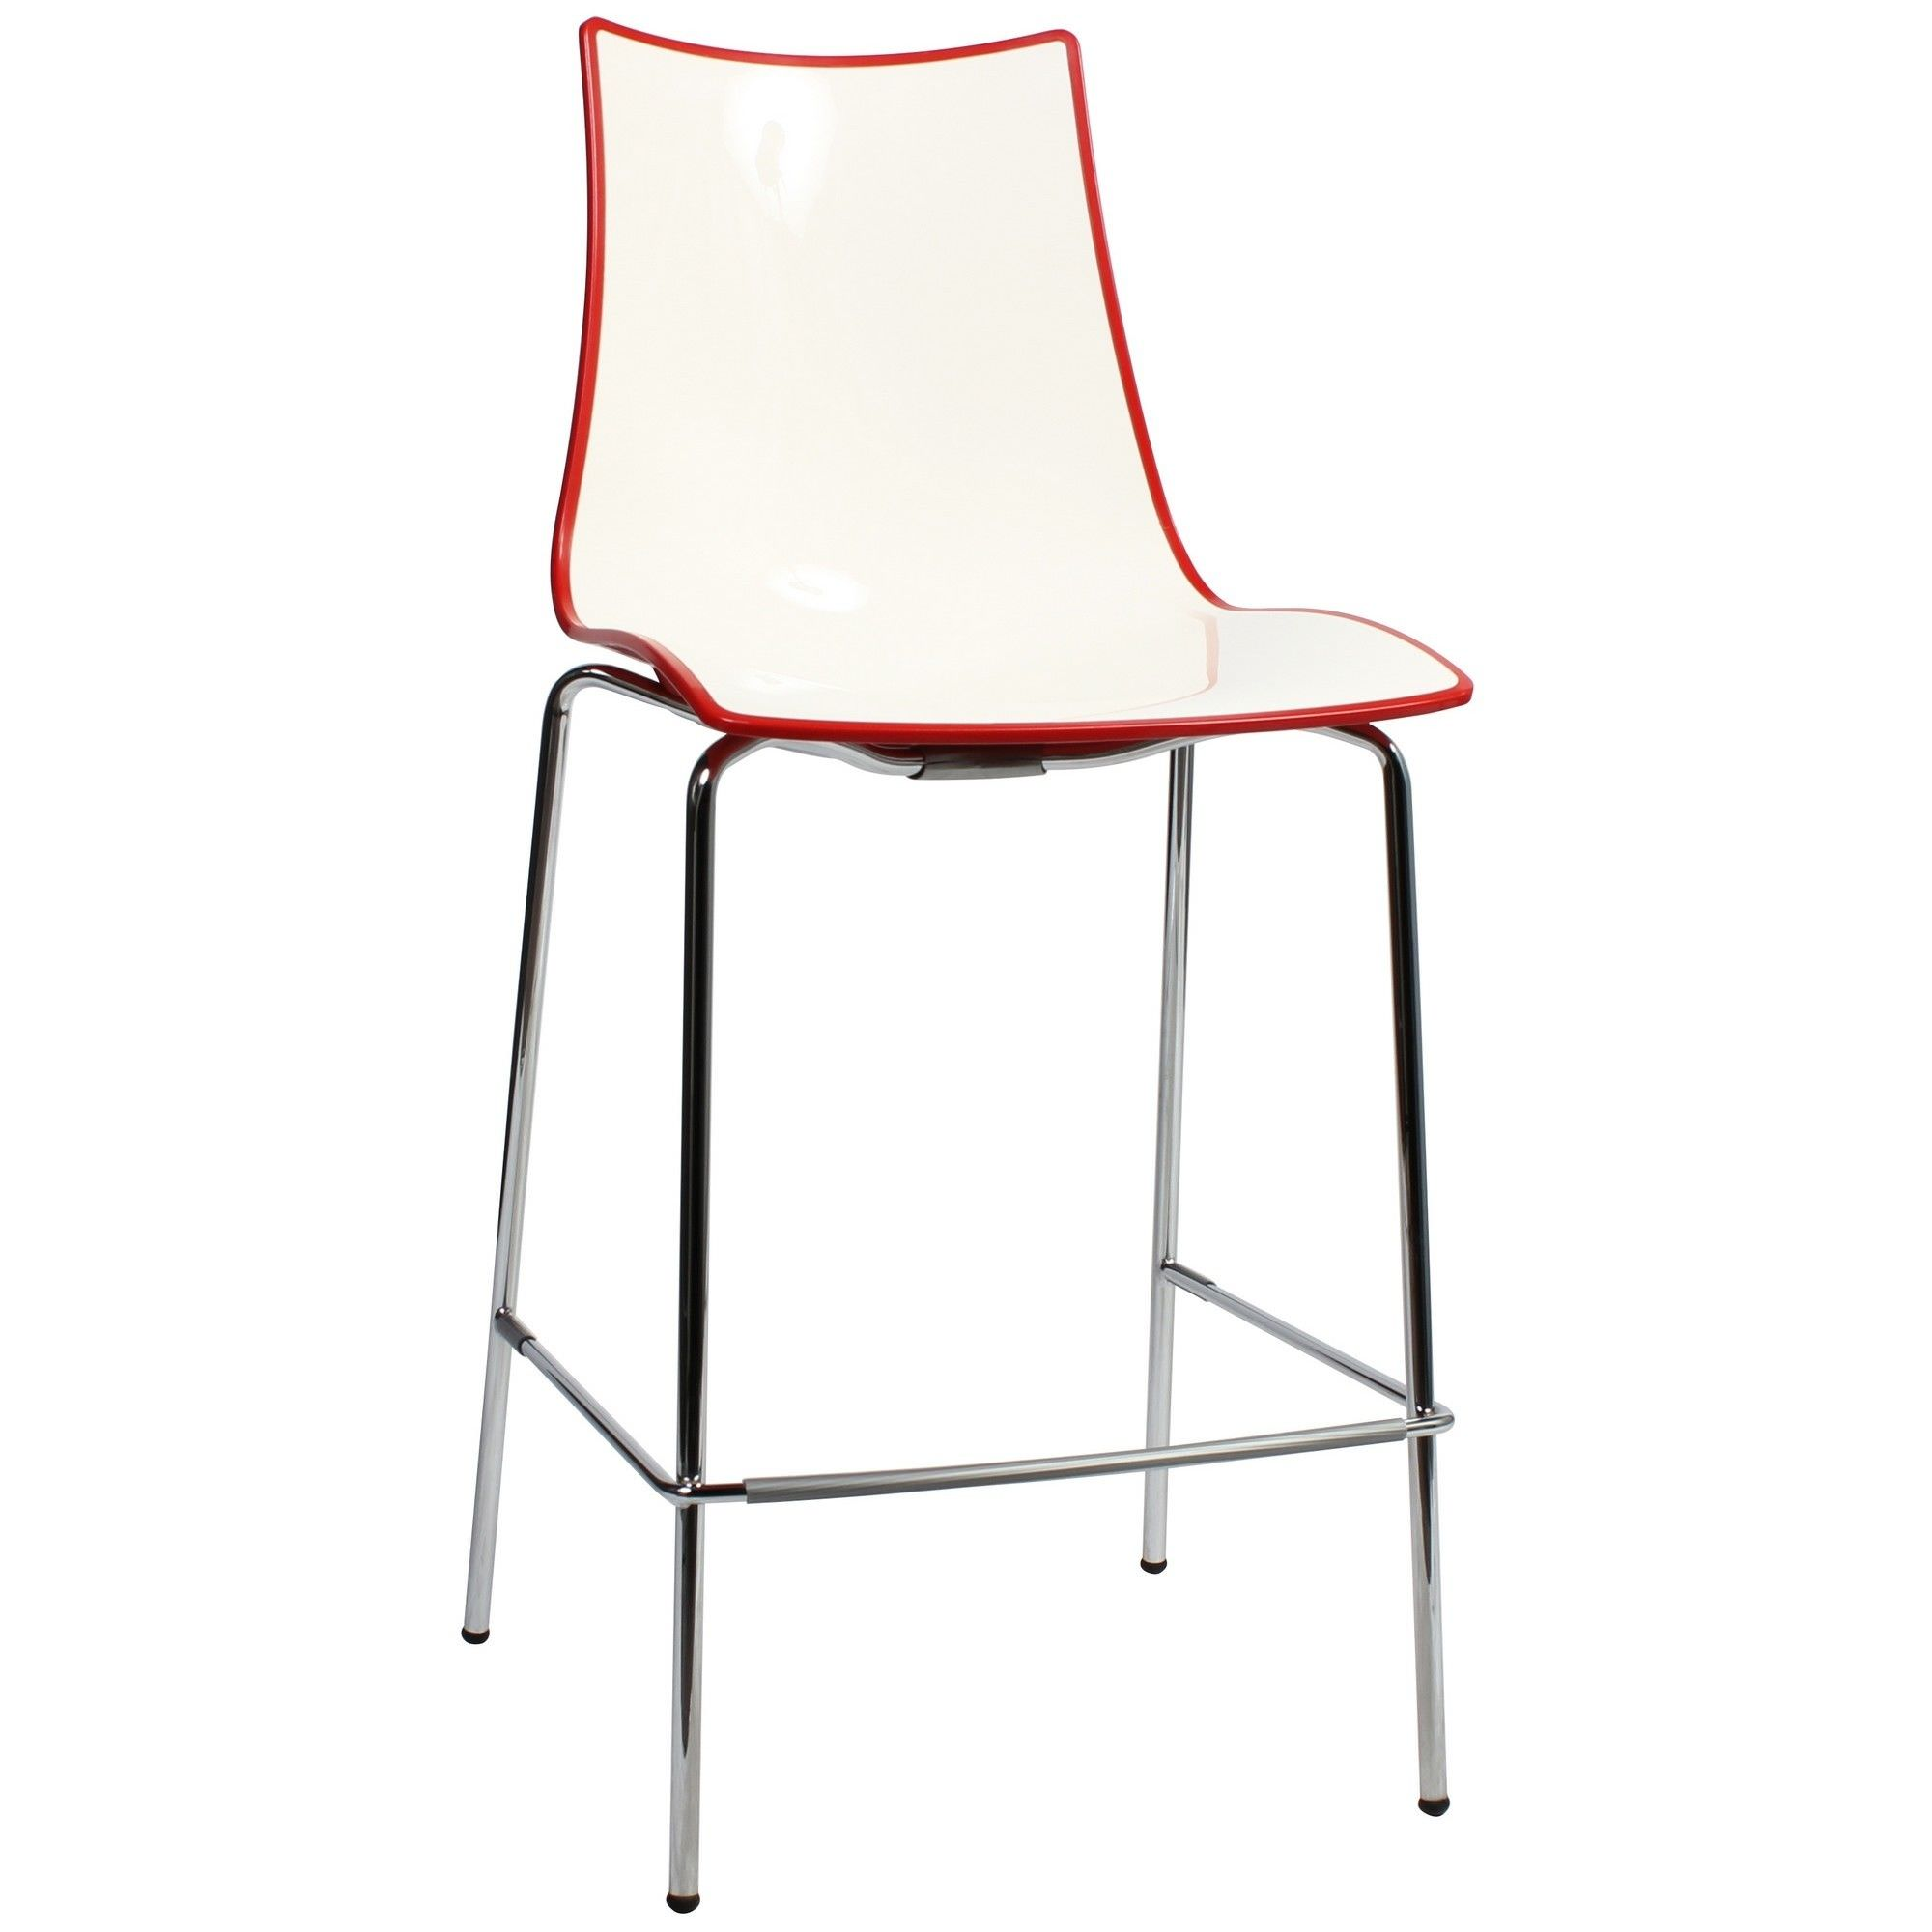 Zebra Bicolore Italian Made Commercial Grade Counter Stool, Metal Leg, Red / Chrome